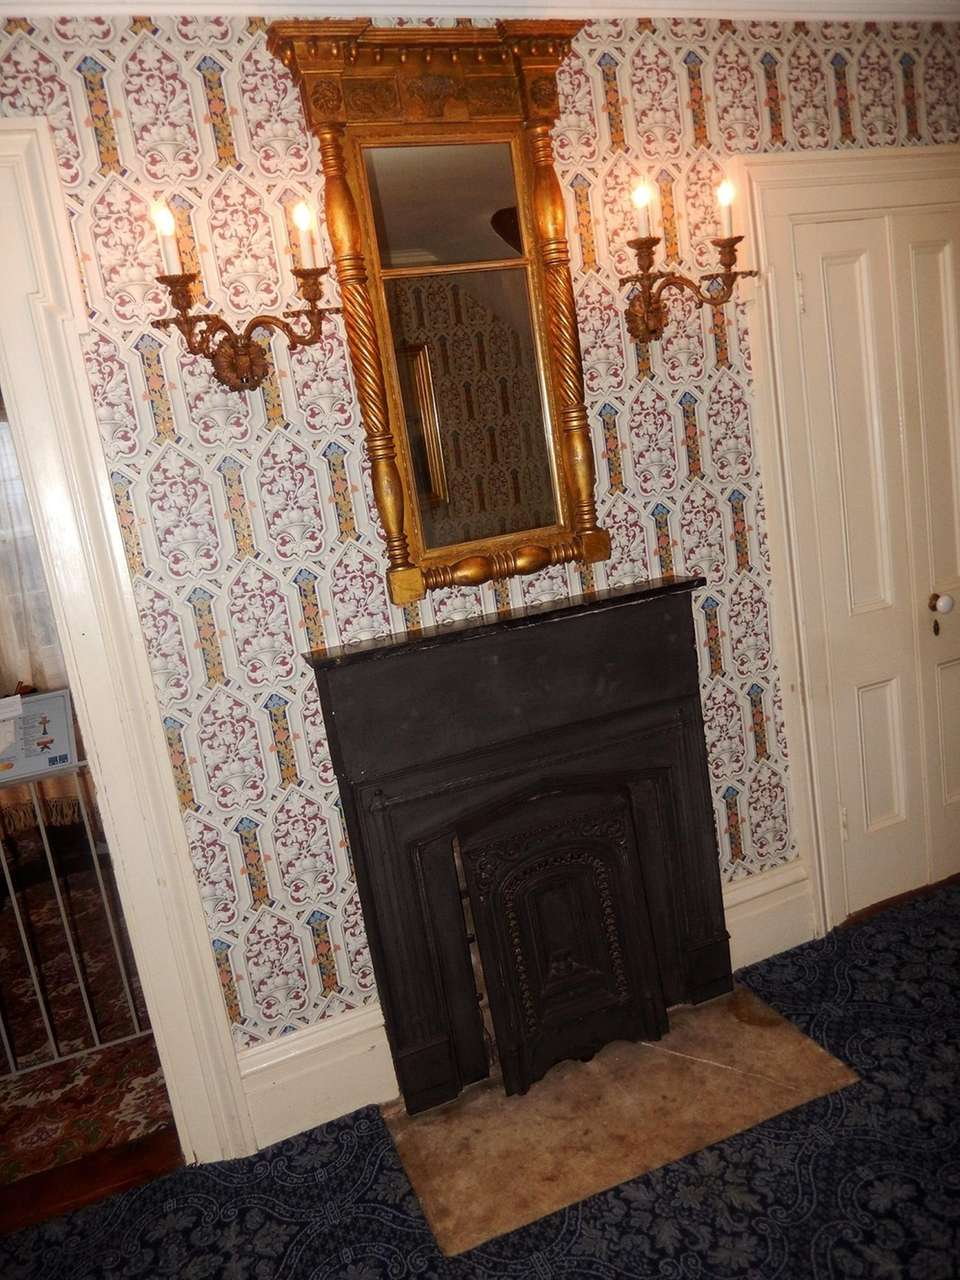 Raynham Hall staffers say that according to paranormal